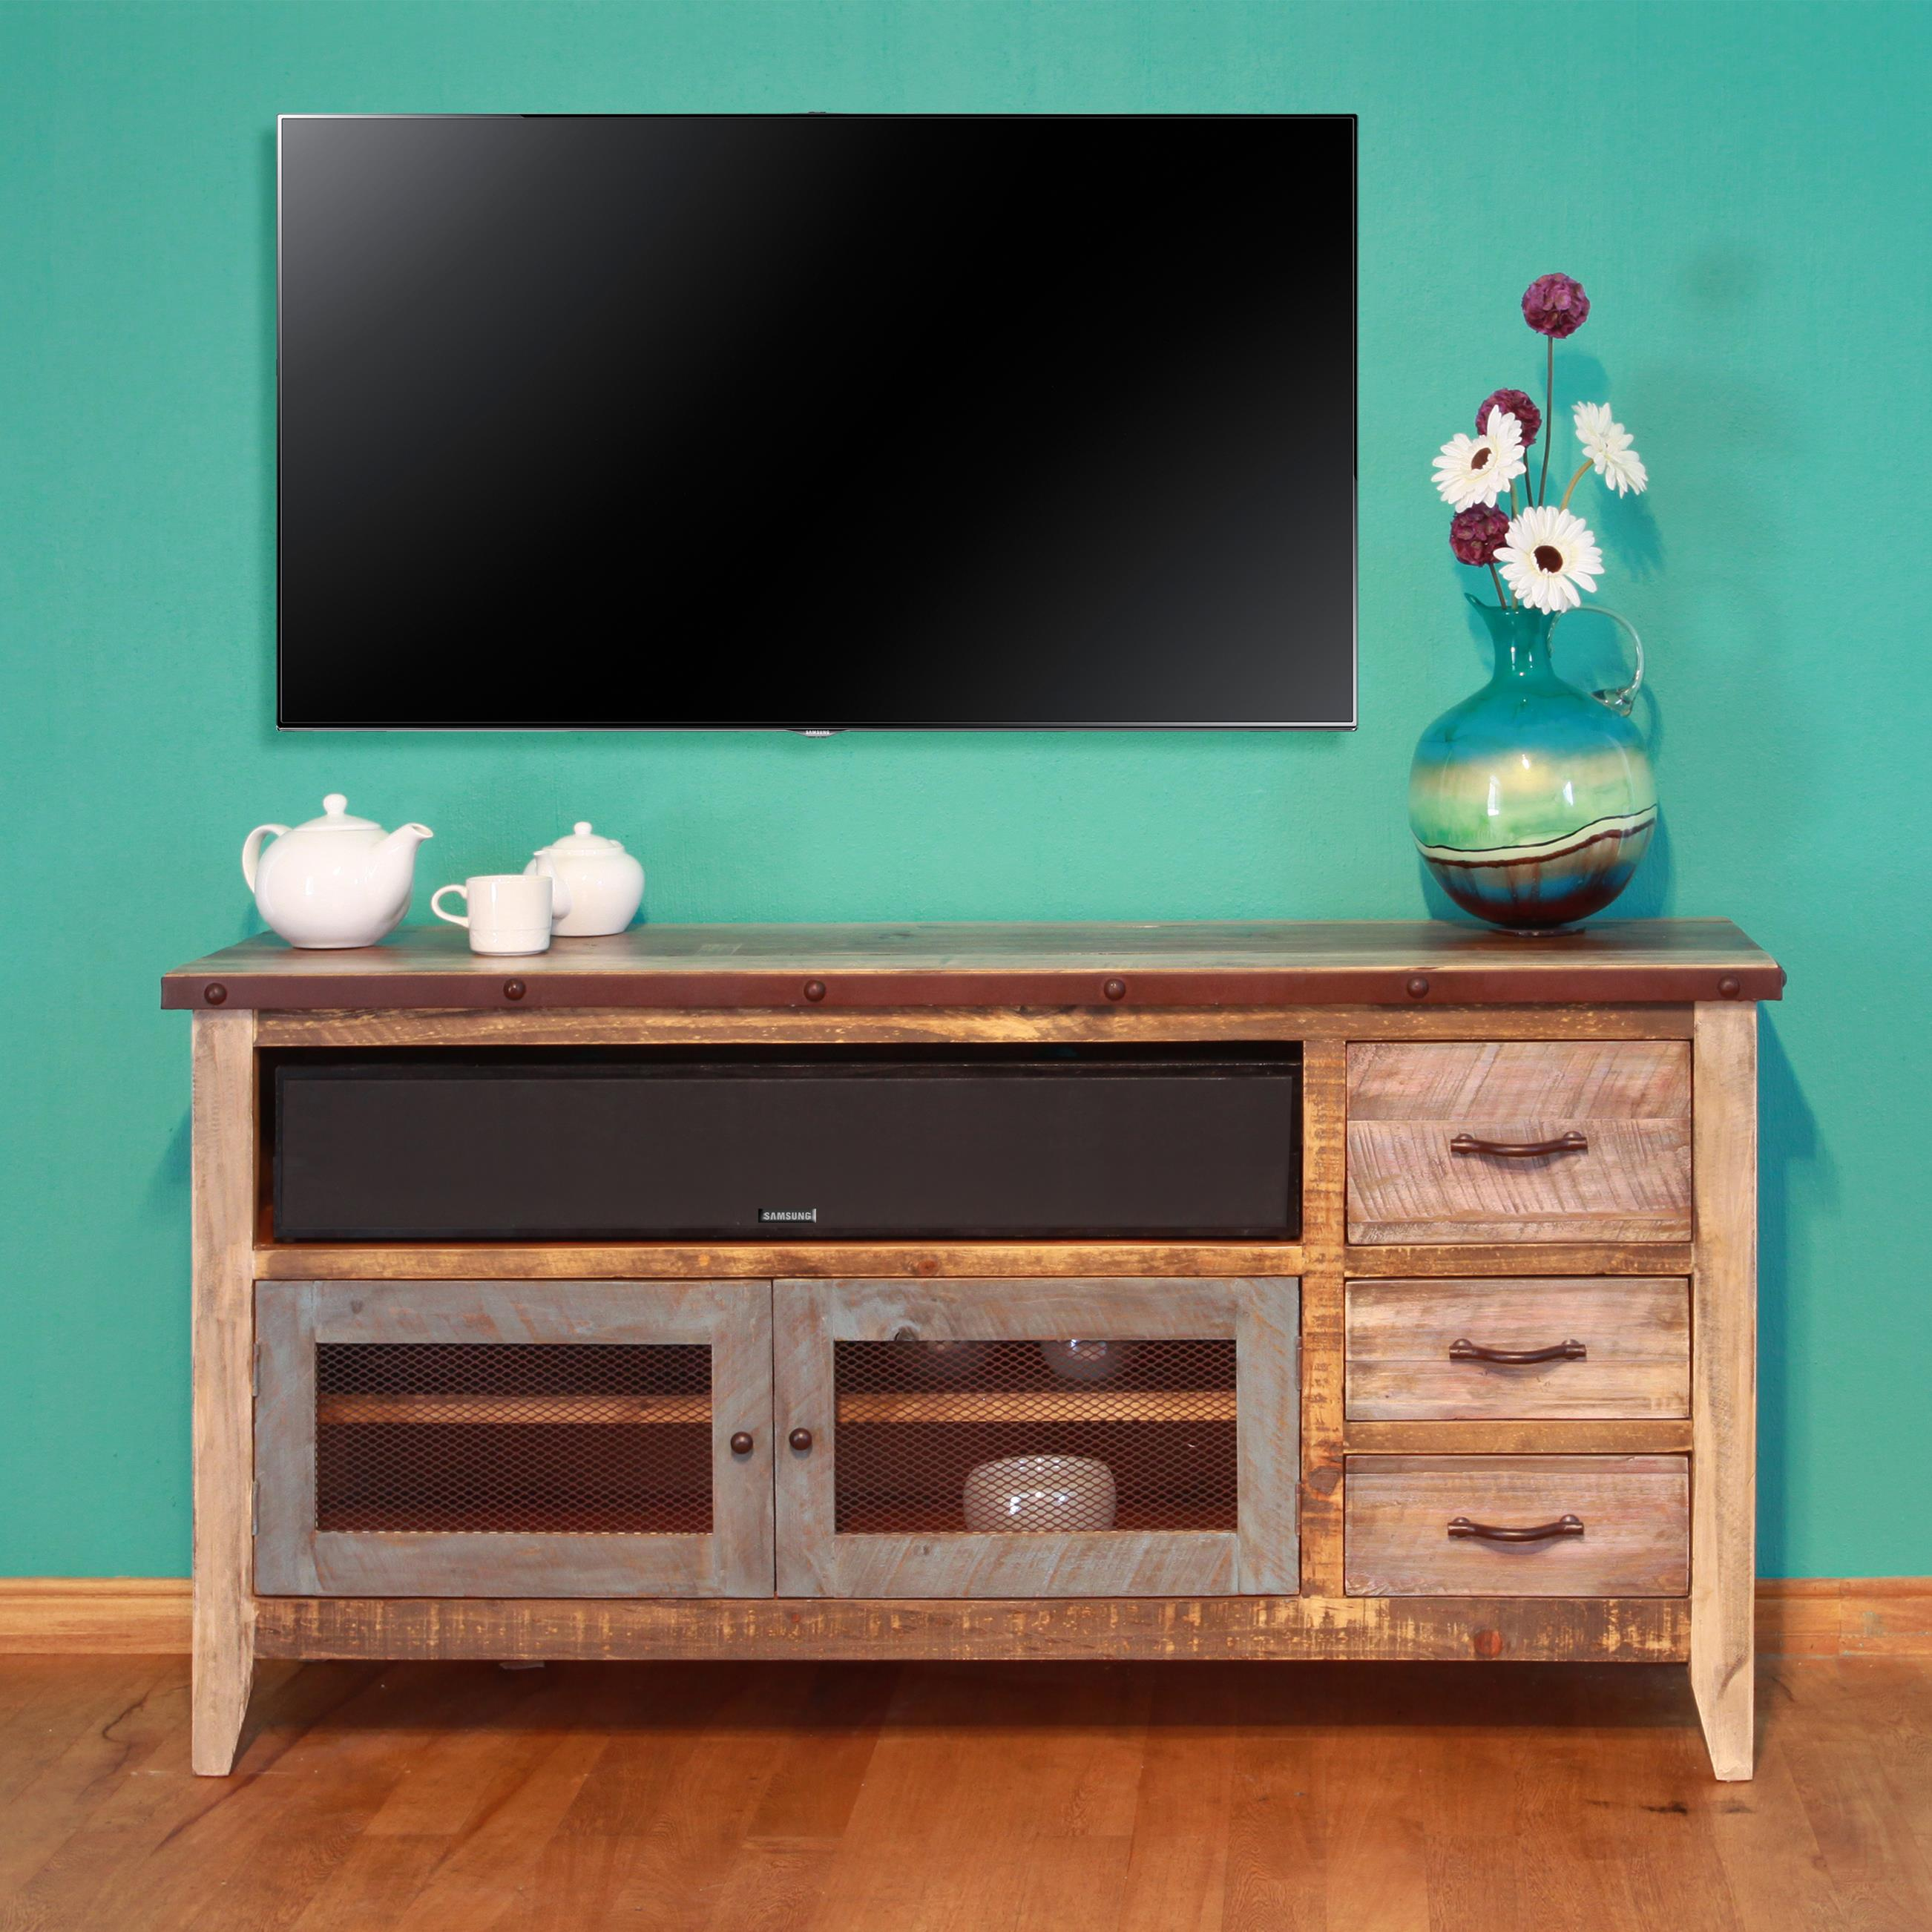 "900 Antique Solid Pine 62"" TV Stand by IFD International Furniture Direct at Suburban Furniture"